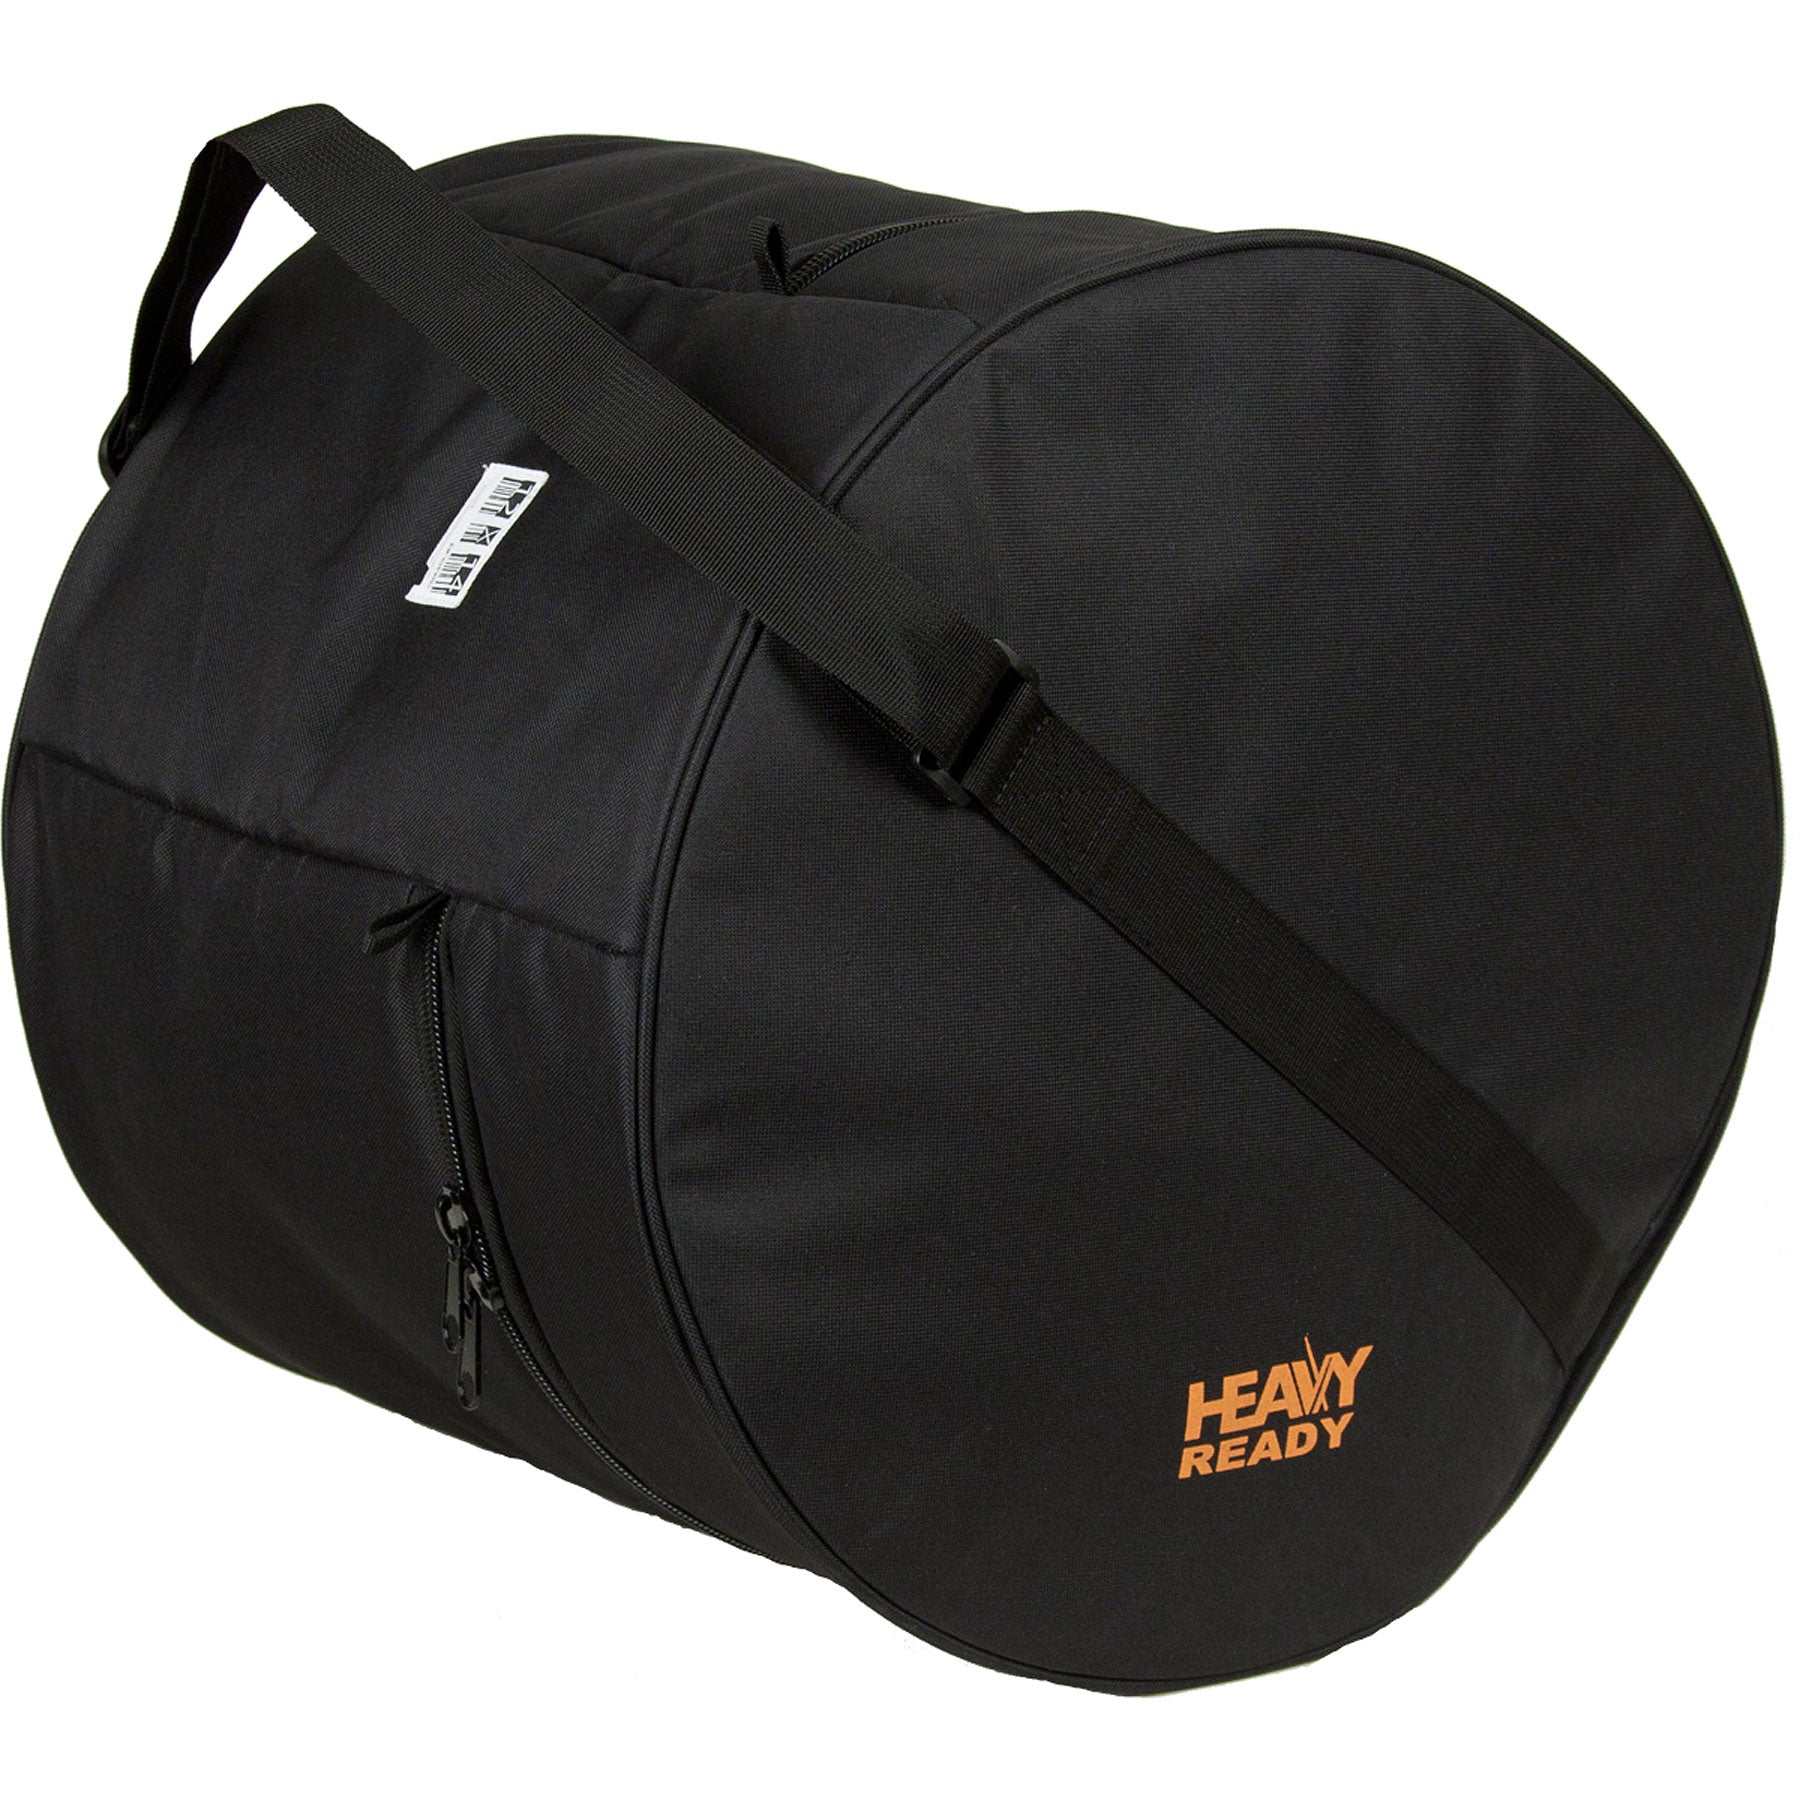 PROTEC Heavy Ready Padded Tom Bag 14x14